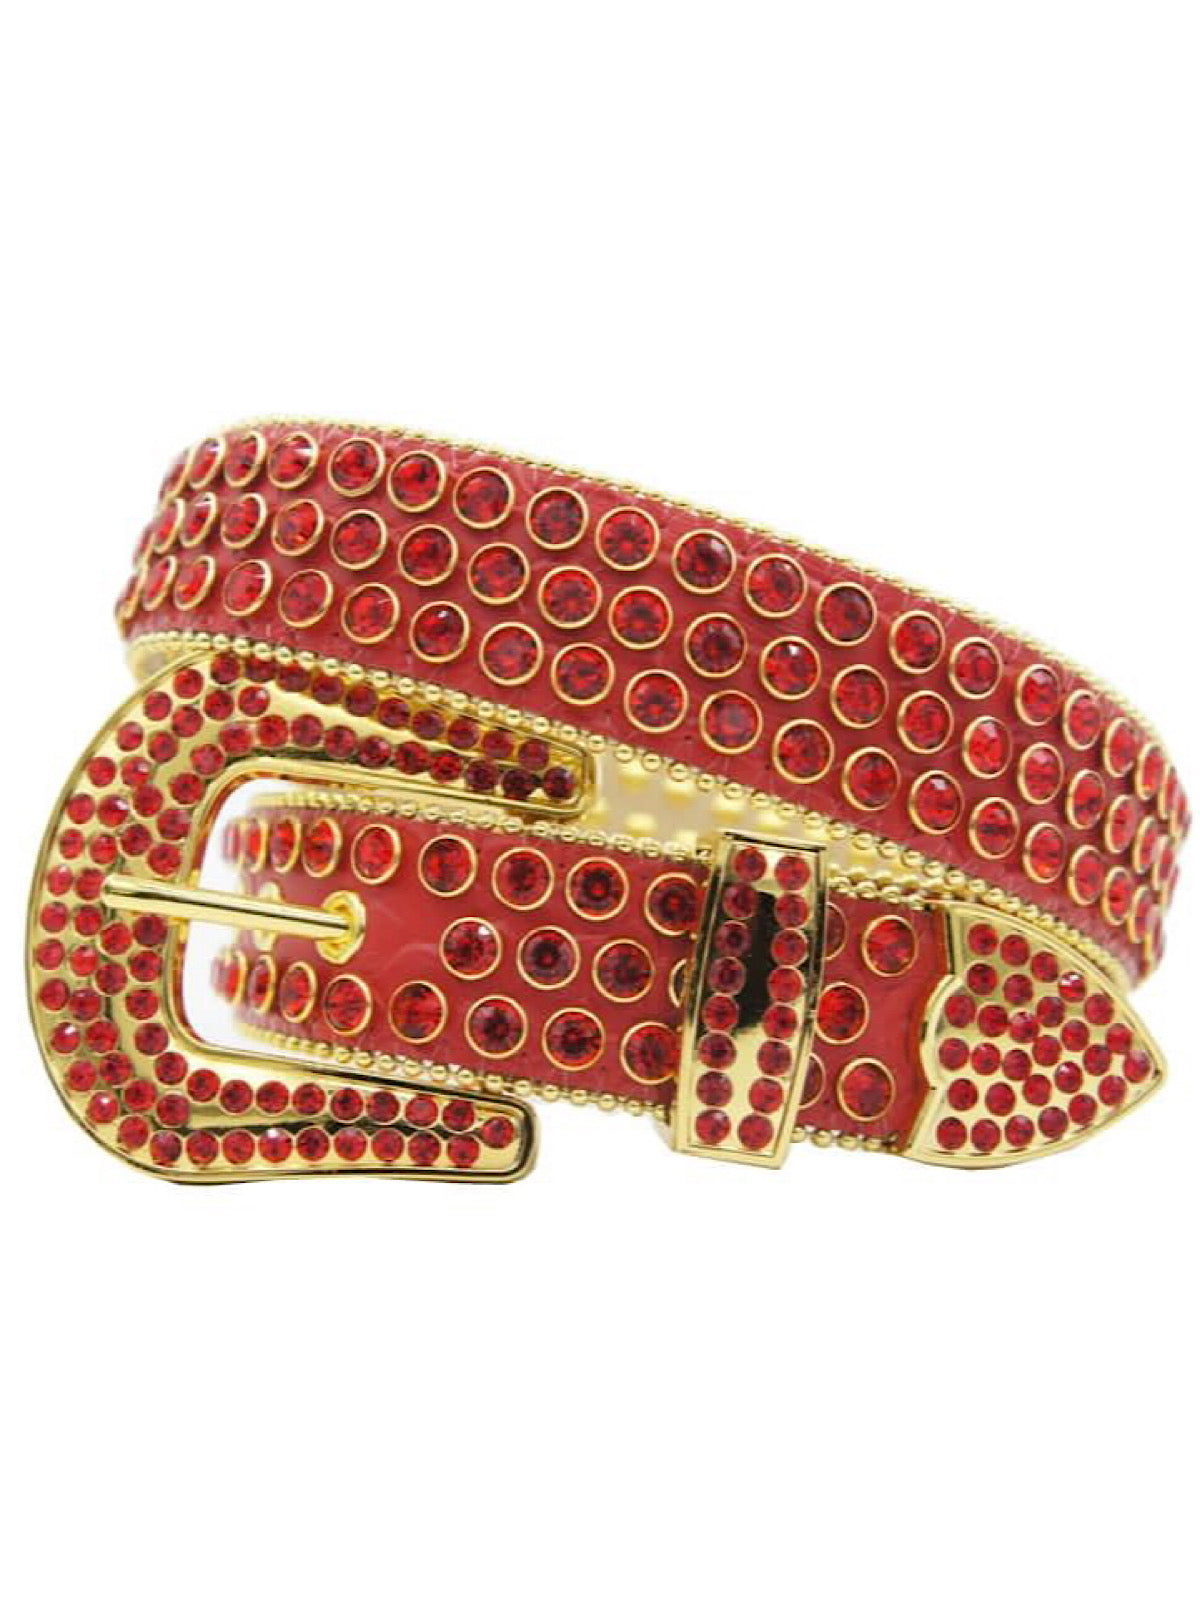 DNA Belt - Stones - All Red with Gold Trim